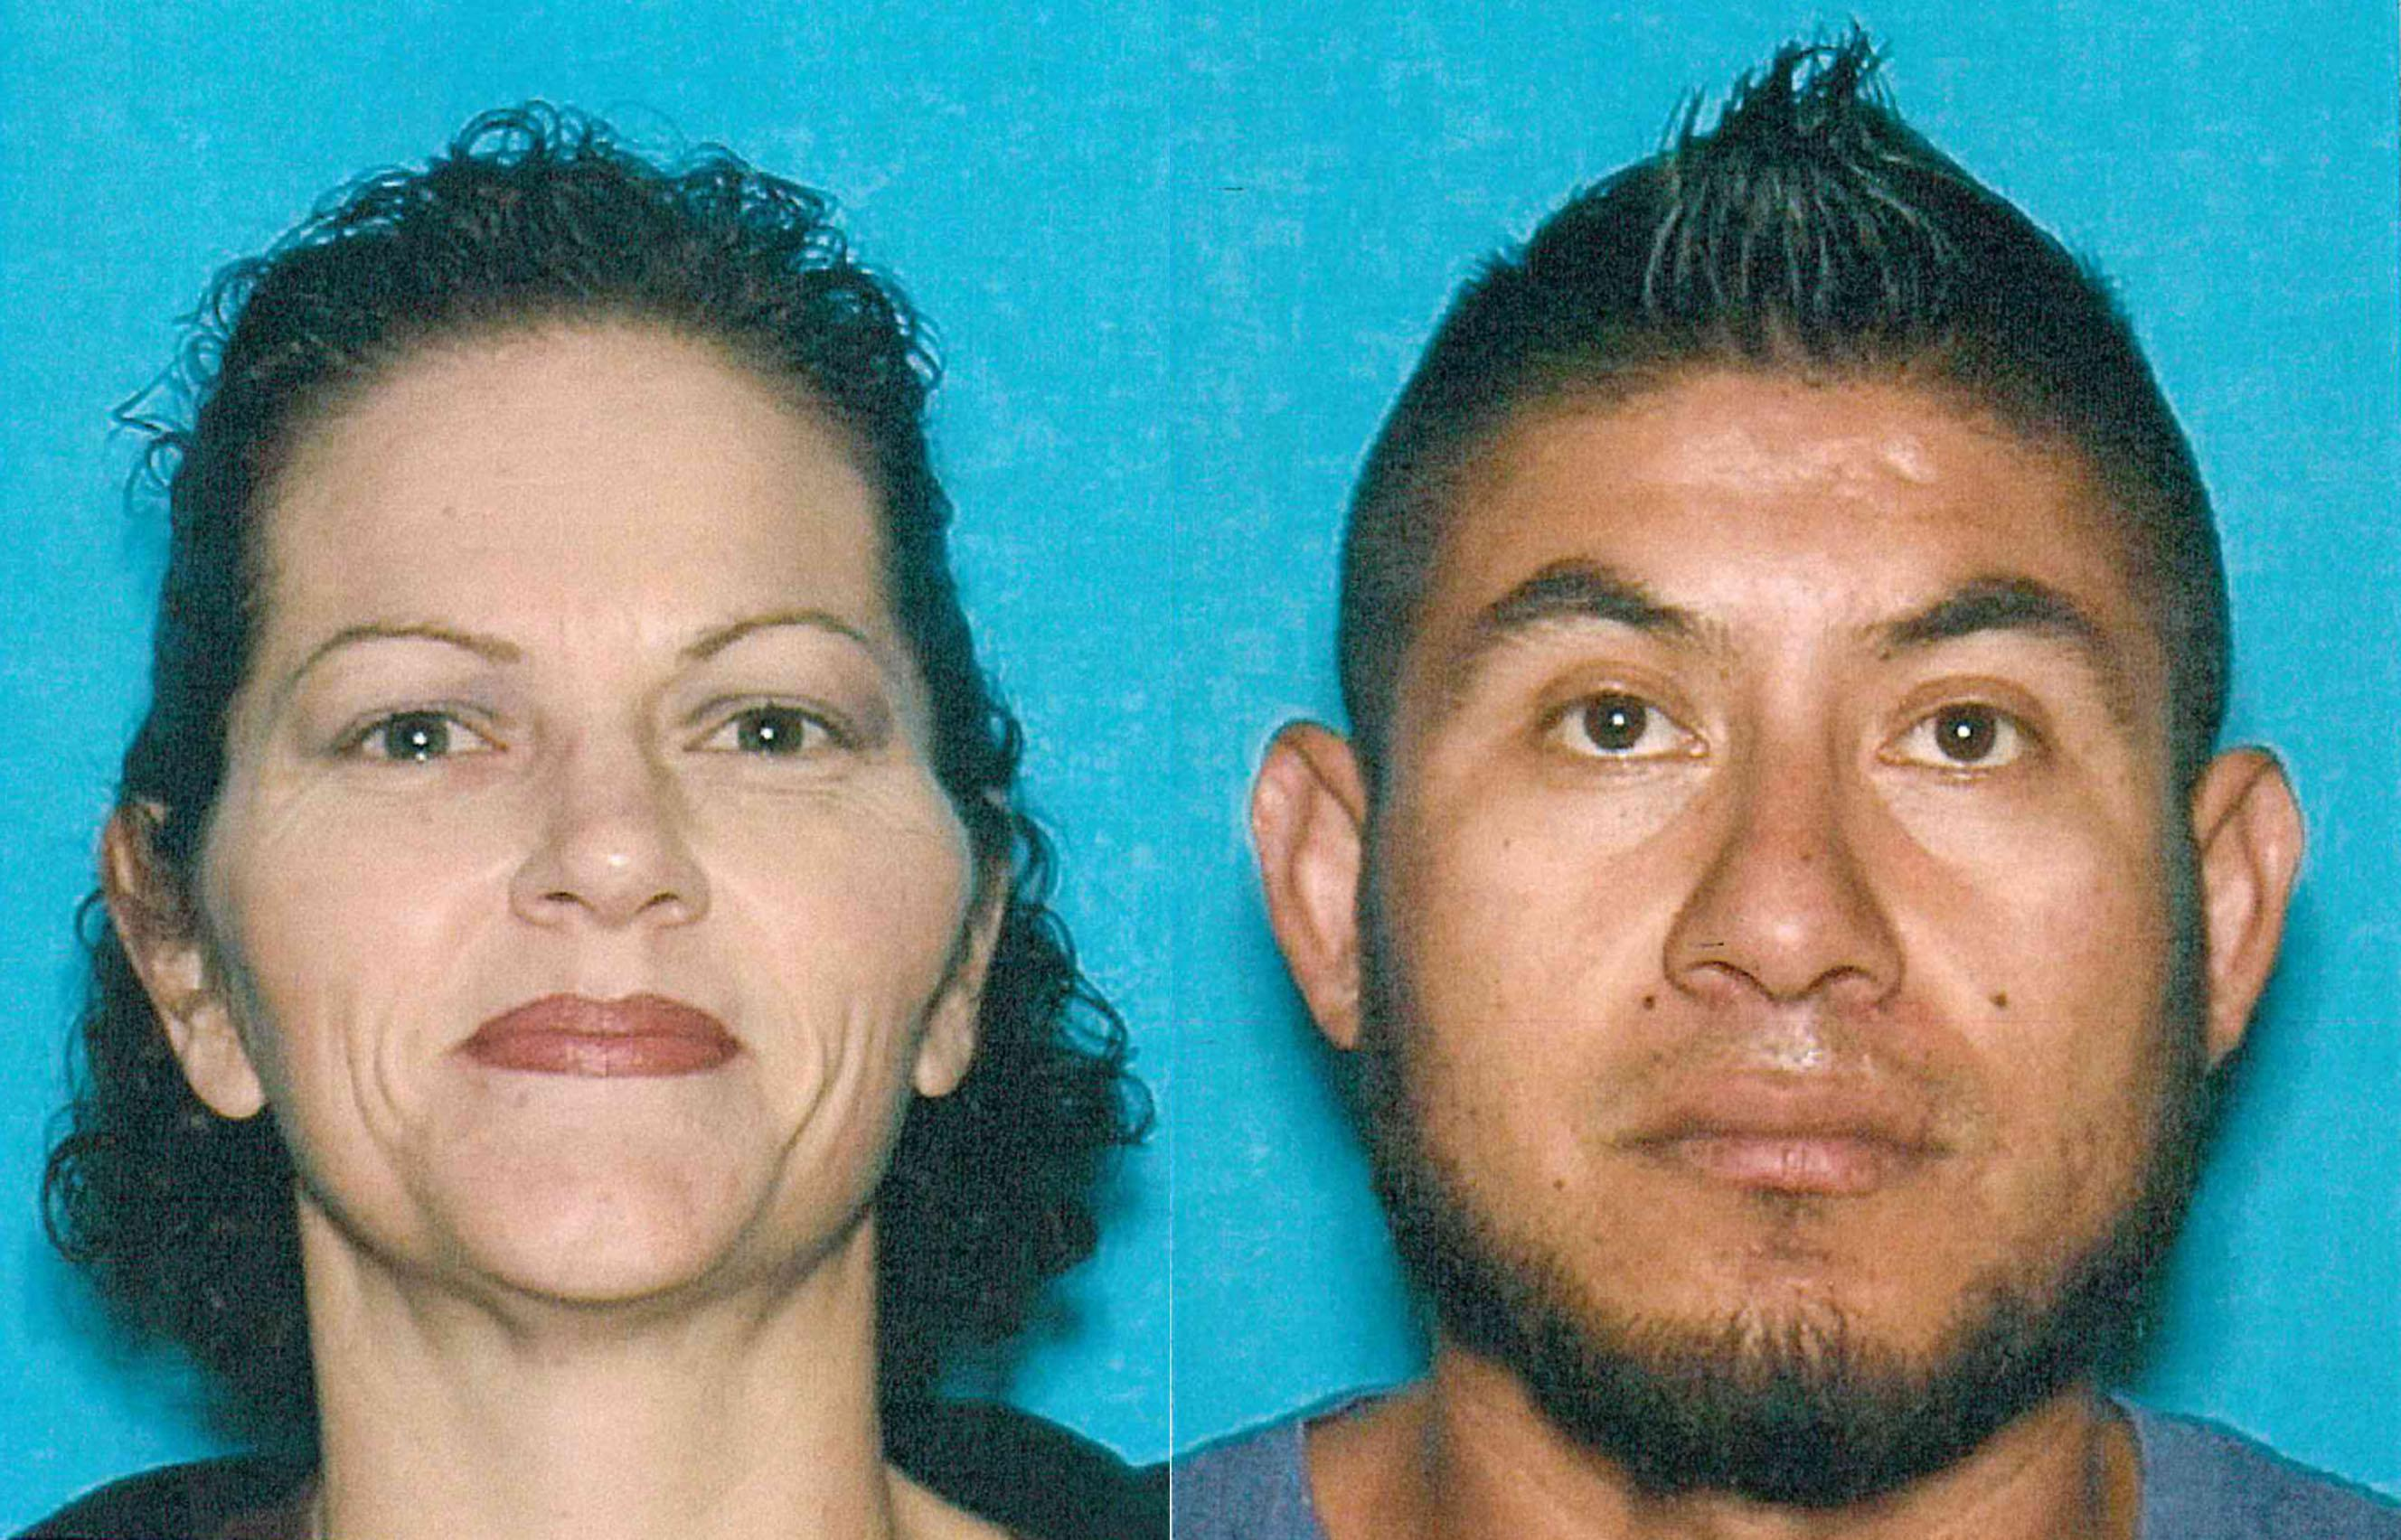 Stacie Mendoza and Jose Mendoza accused of killing of a Hanford man